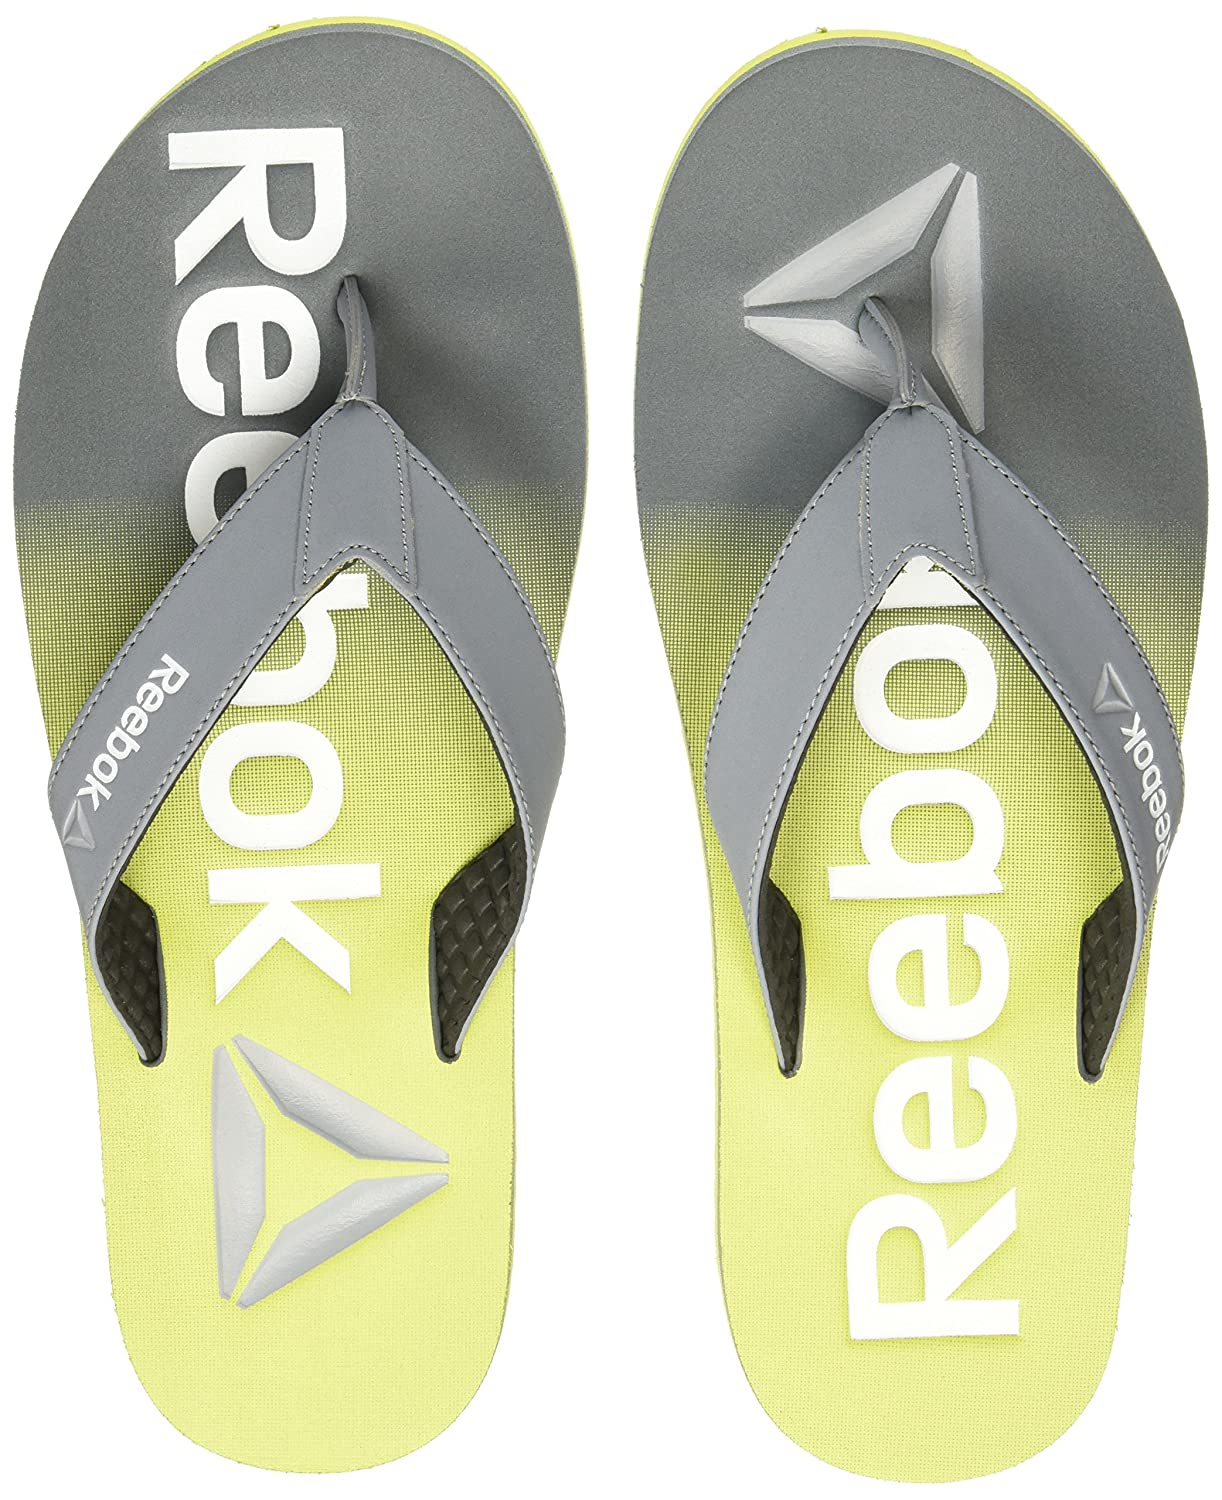 08bfe3387027 Reebok Men s Embossed Flip Dust Green Metsilver Wht House Slippers - 11  UK India (45.5 EU) (12 US) (BS9224)  Buy Online at Low Prices in India -  Amazon.in